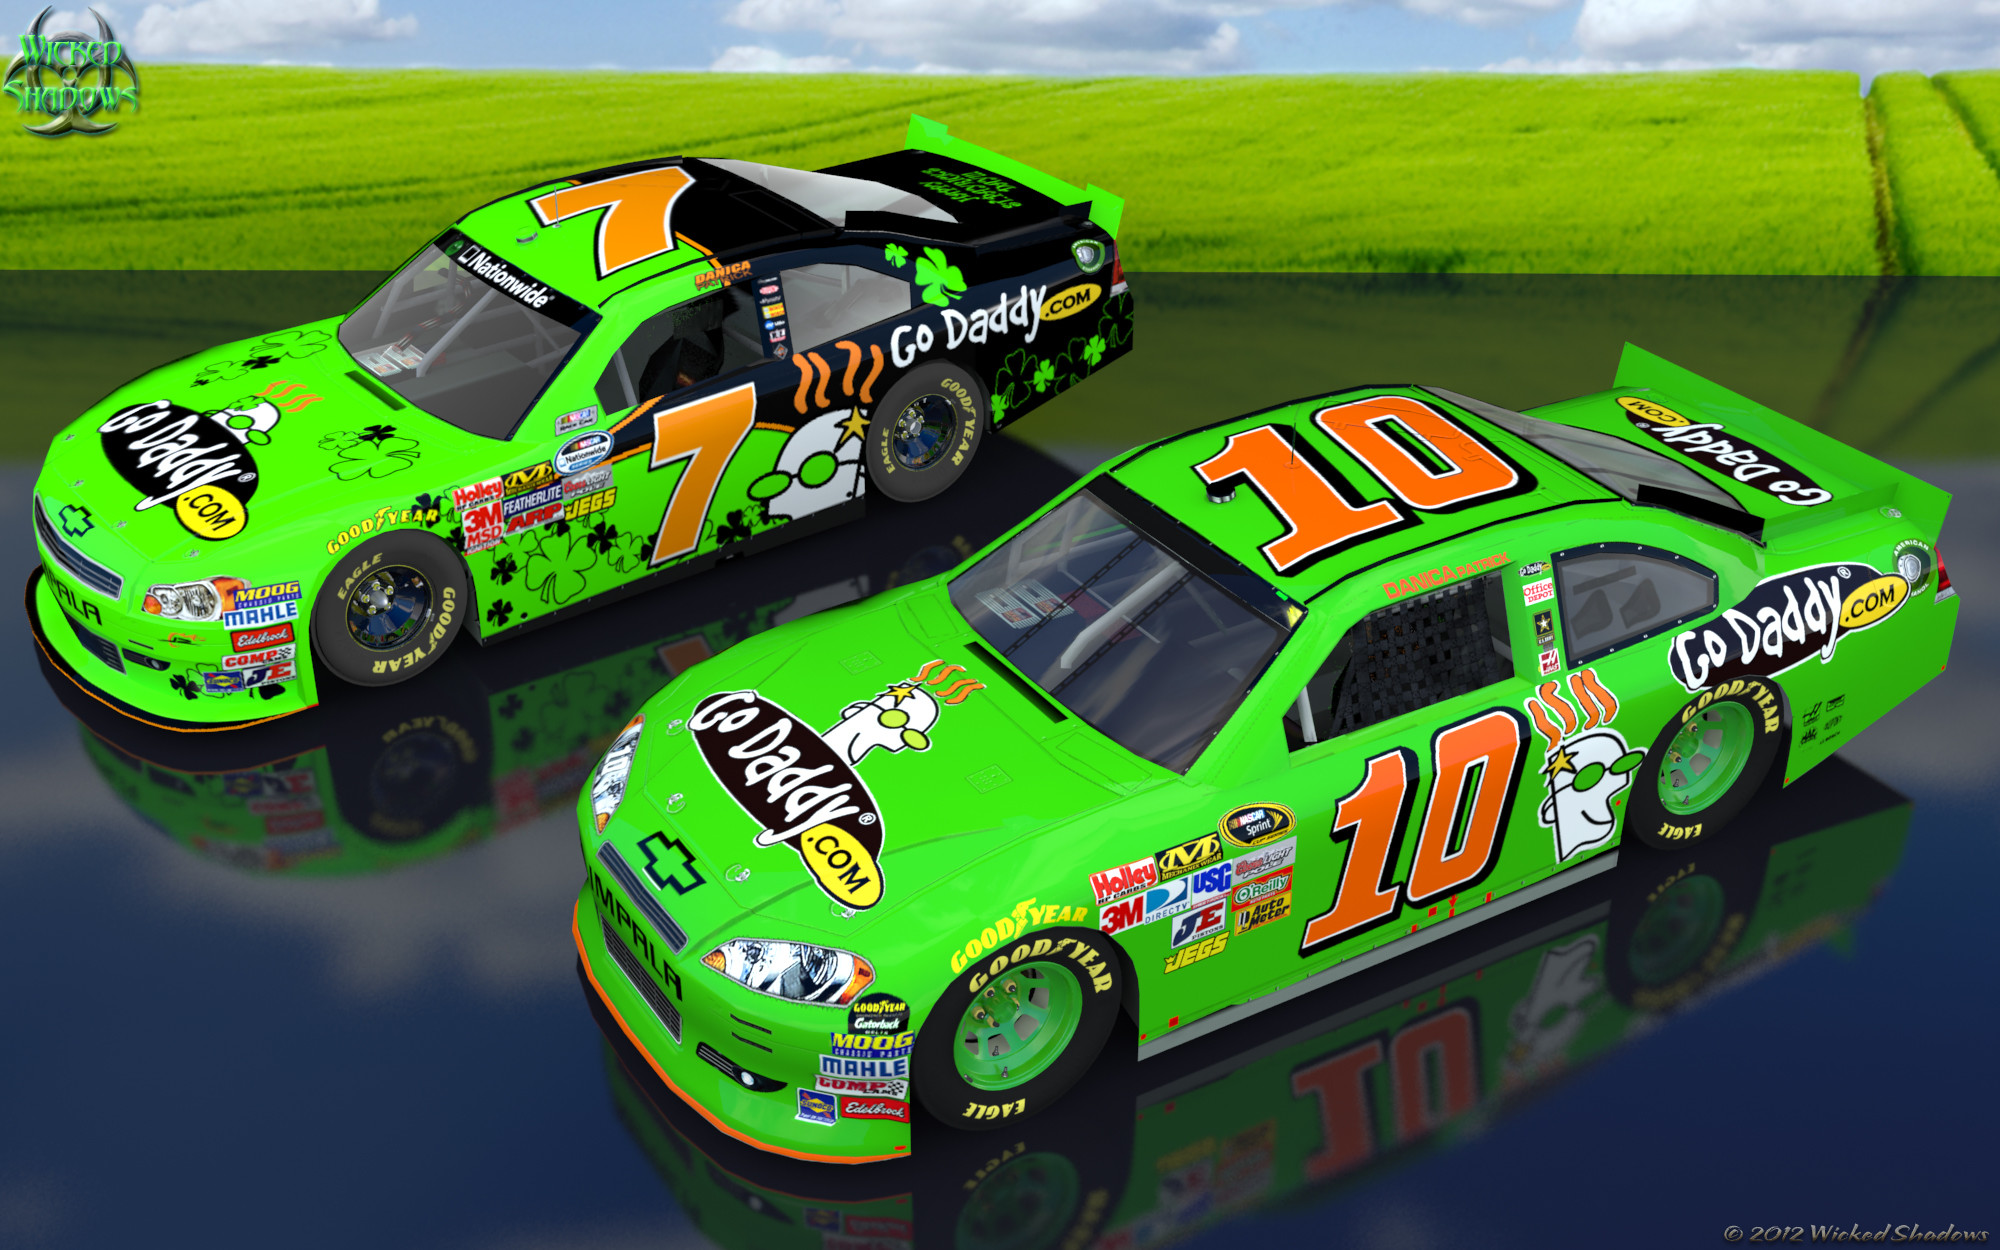 2000x1250 Wallpapers By Wicked Shadows: Danica Patrick 2012 double .